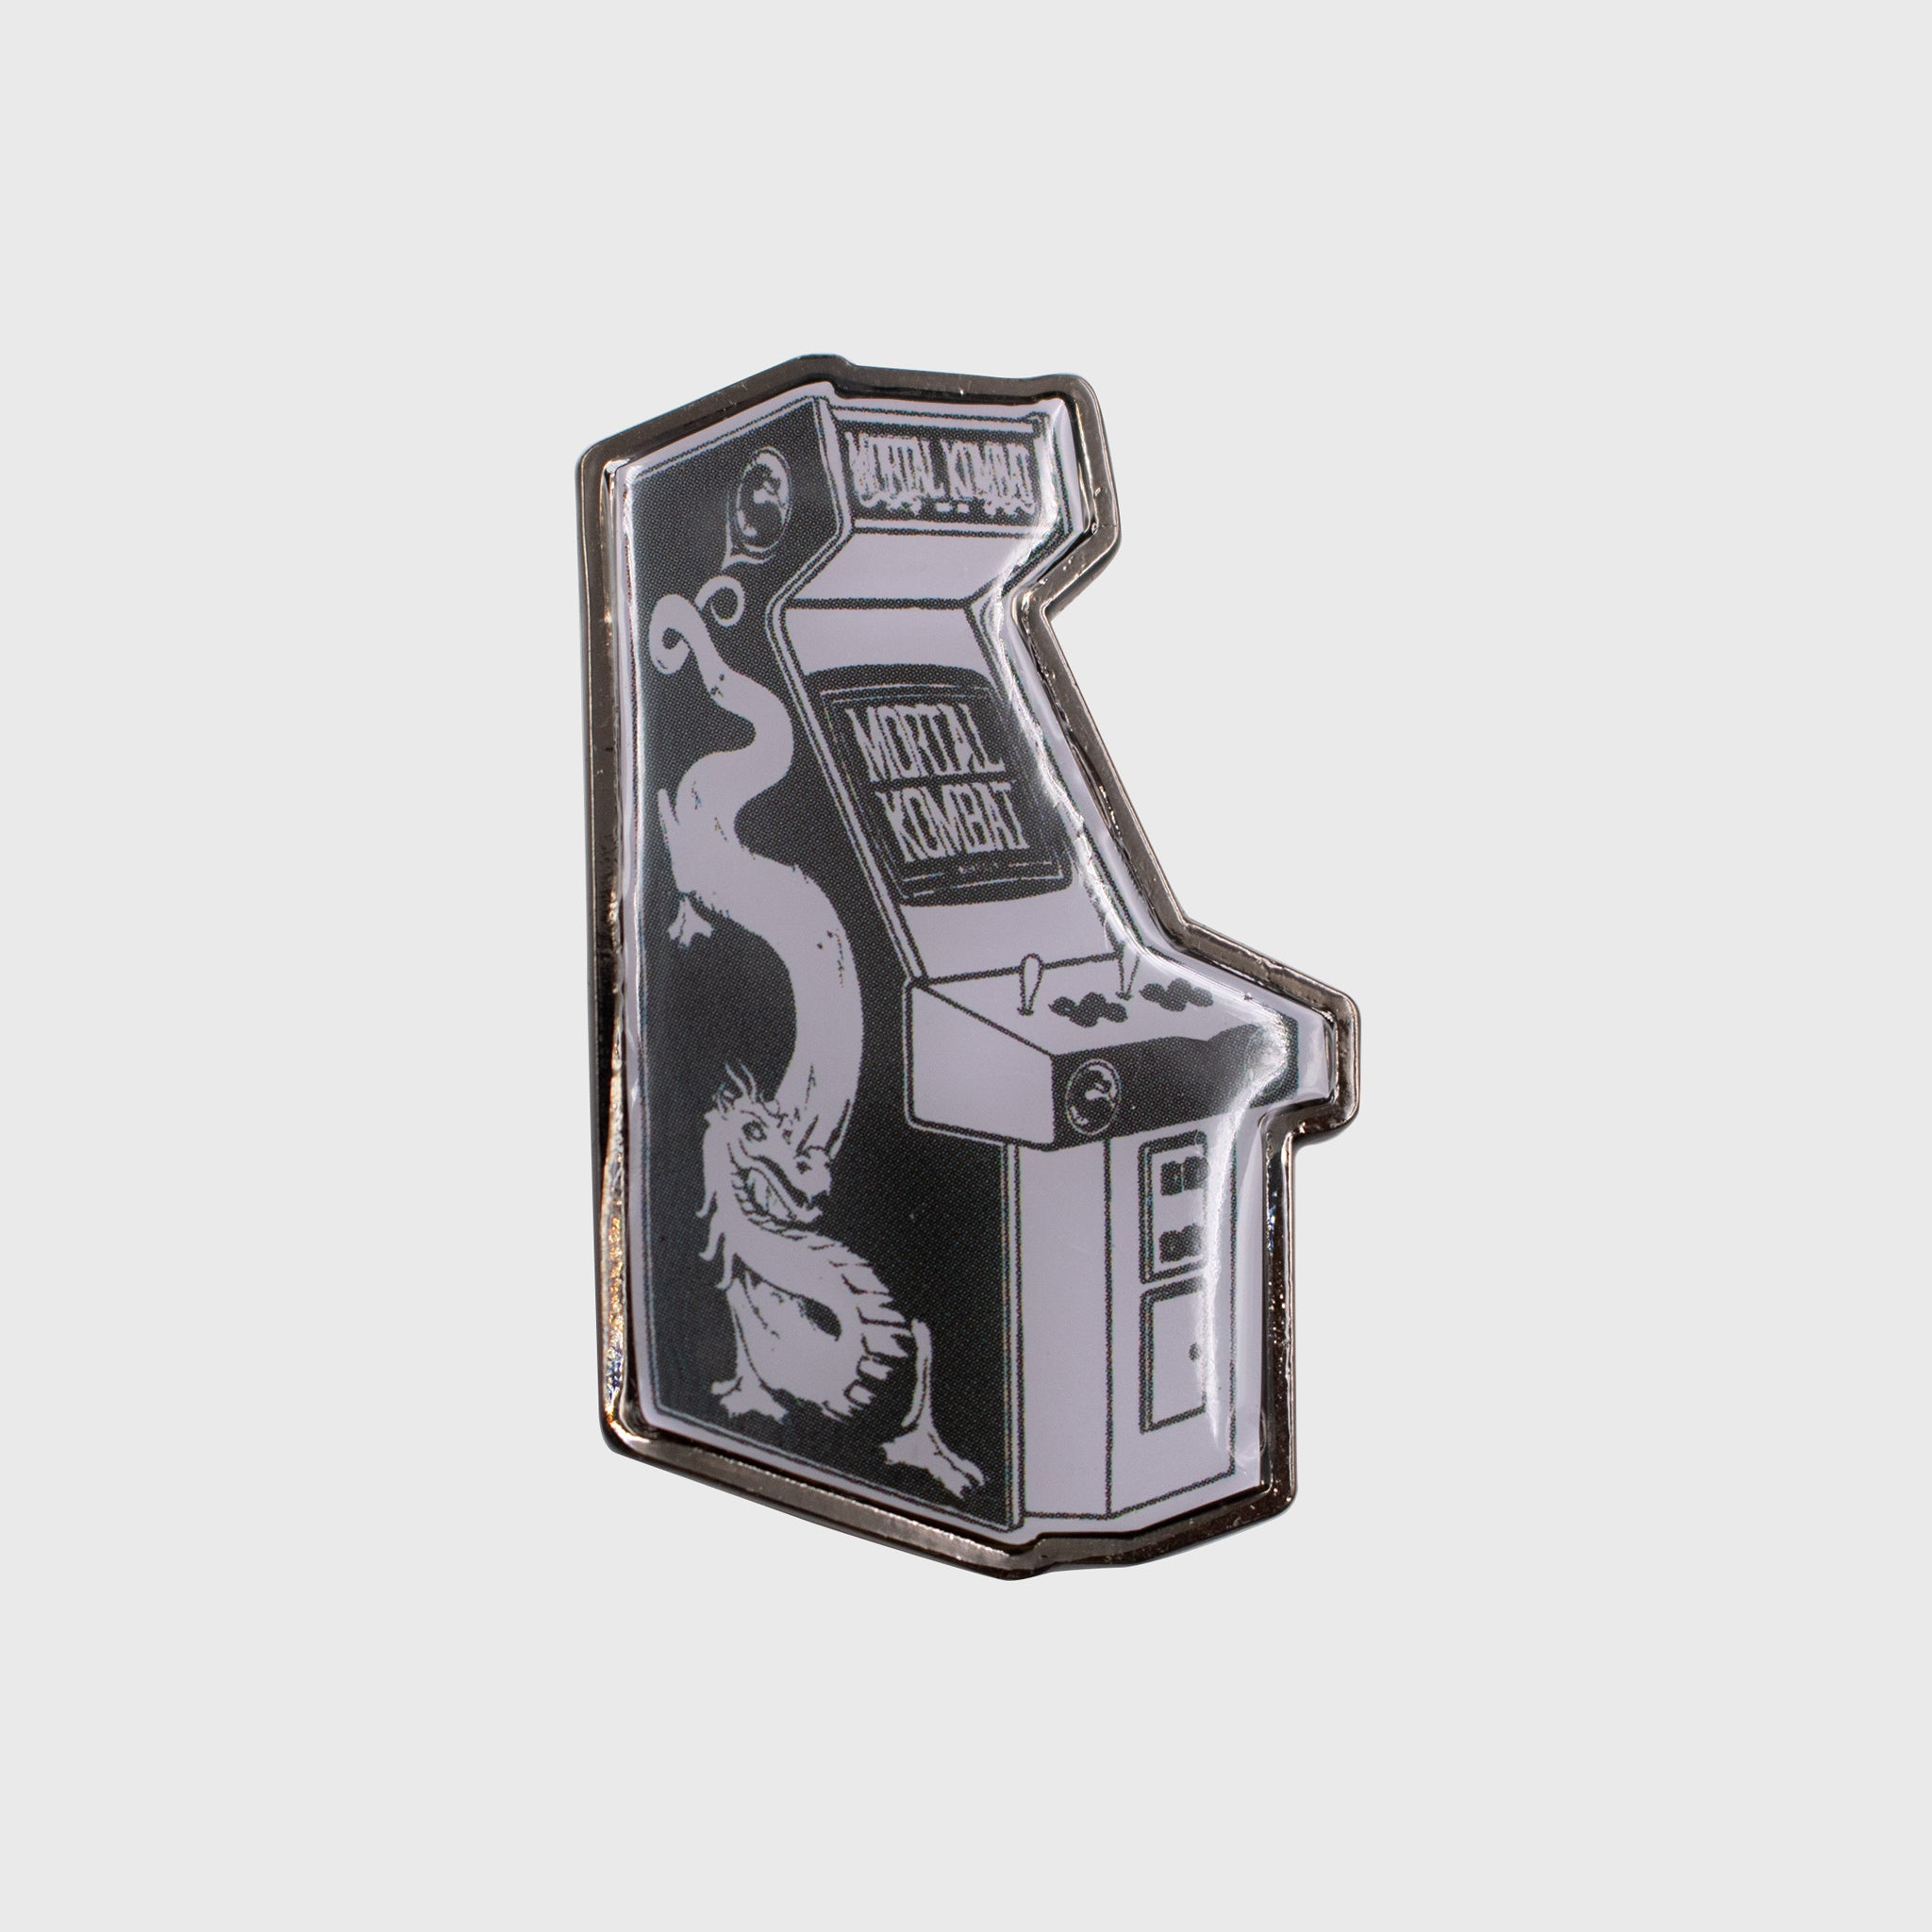 mortal kombat collector box collectible exclusive retro arcade cabinet enamel pin culturefly